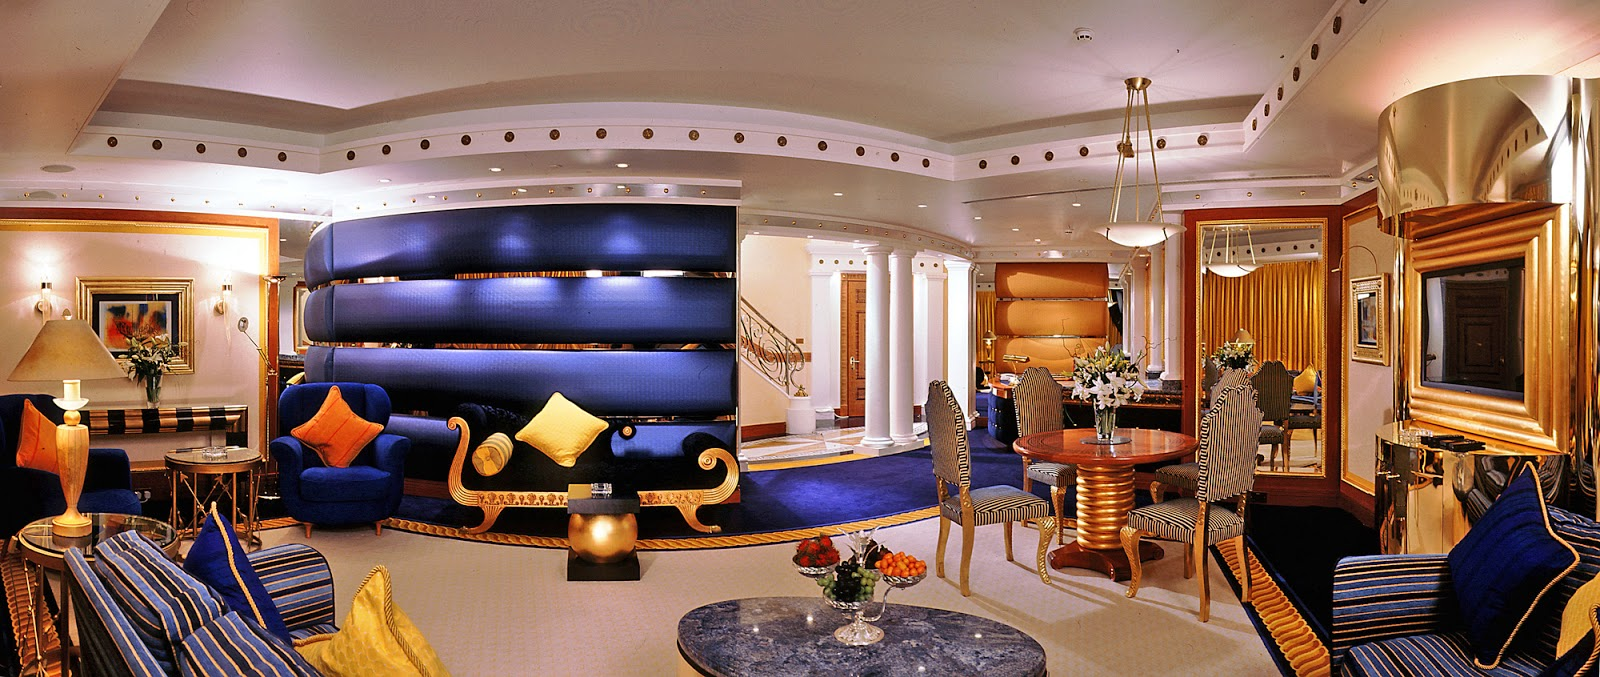 World visits burj al arab hotel in dubai suite and interior for Biggest hotel in dubai